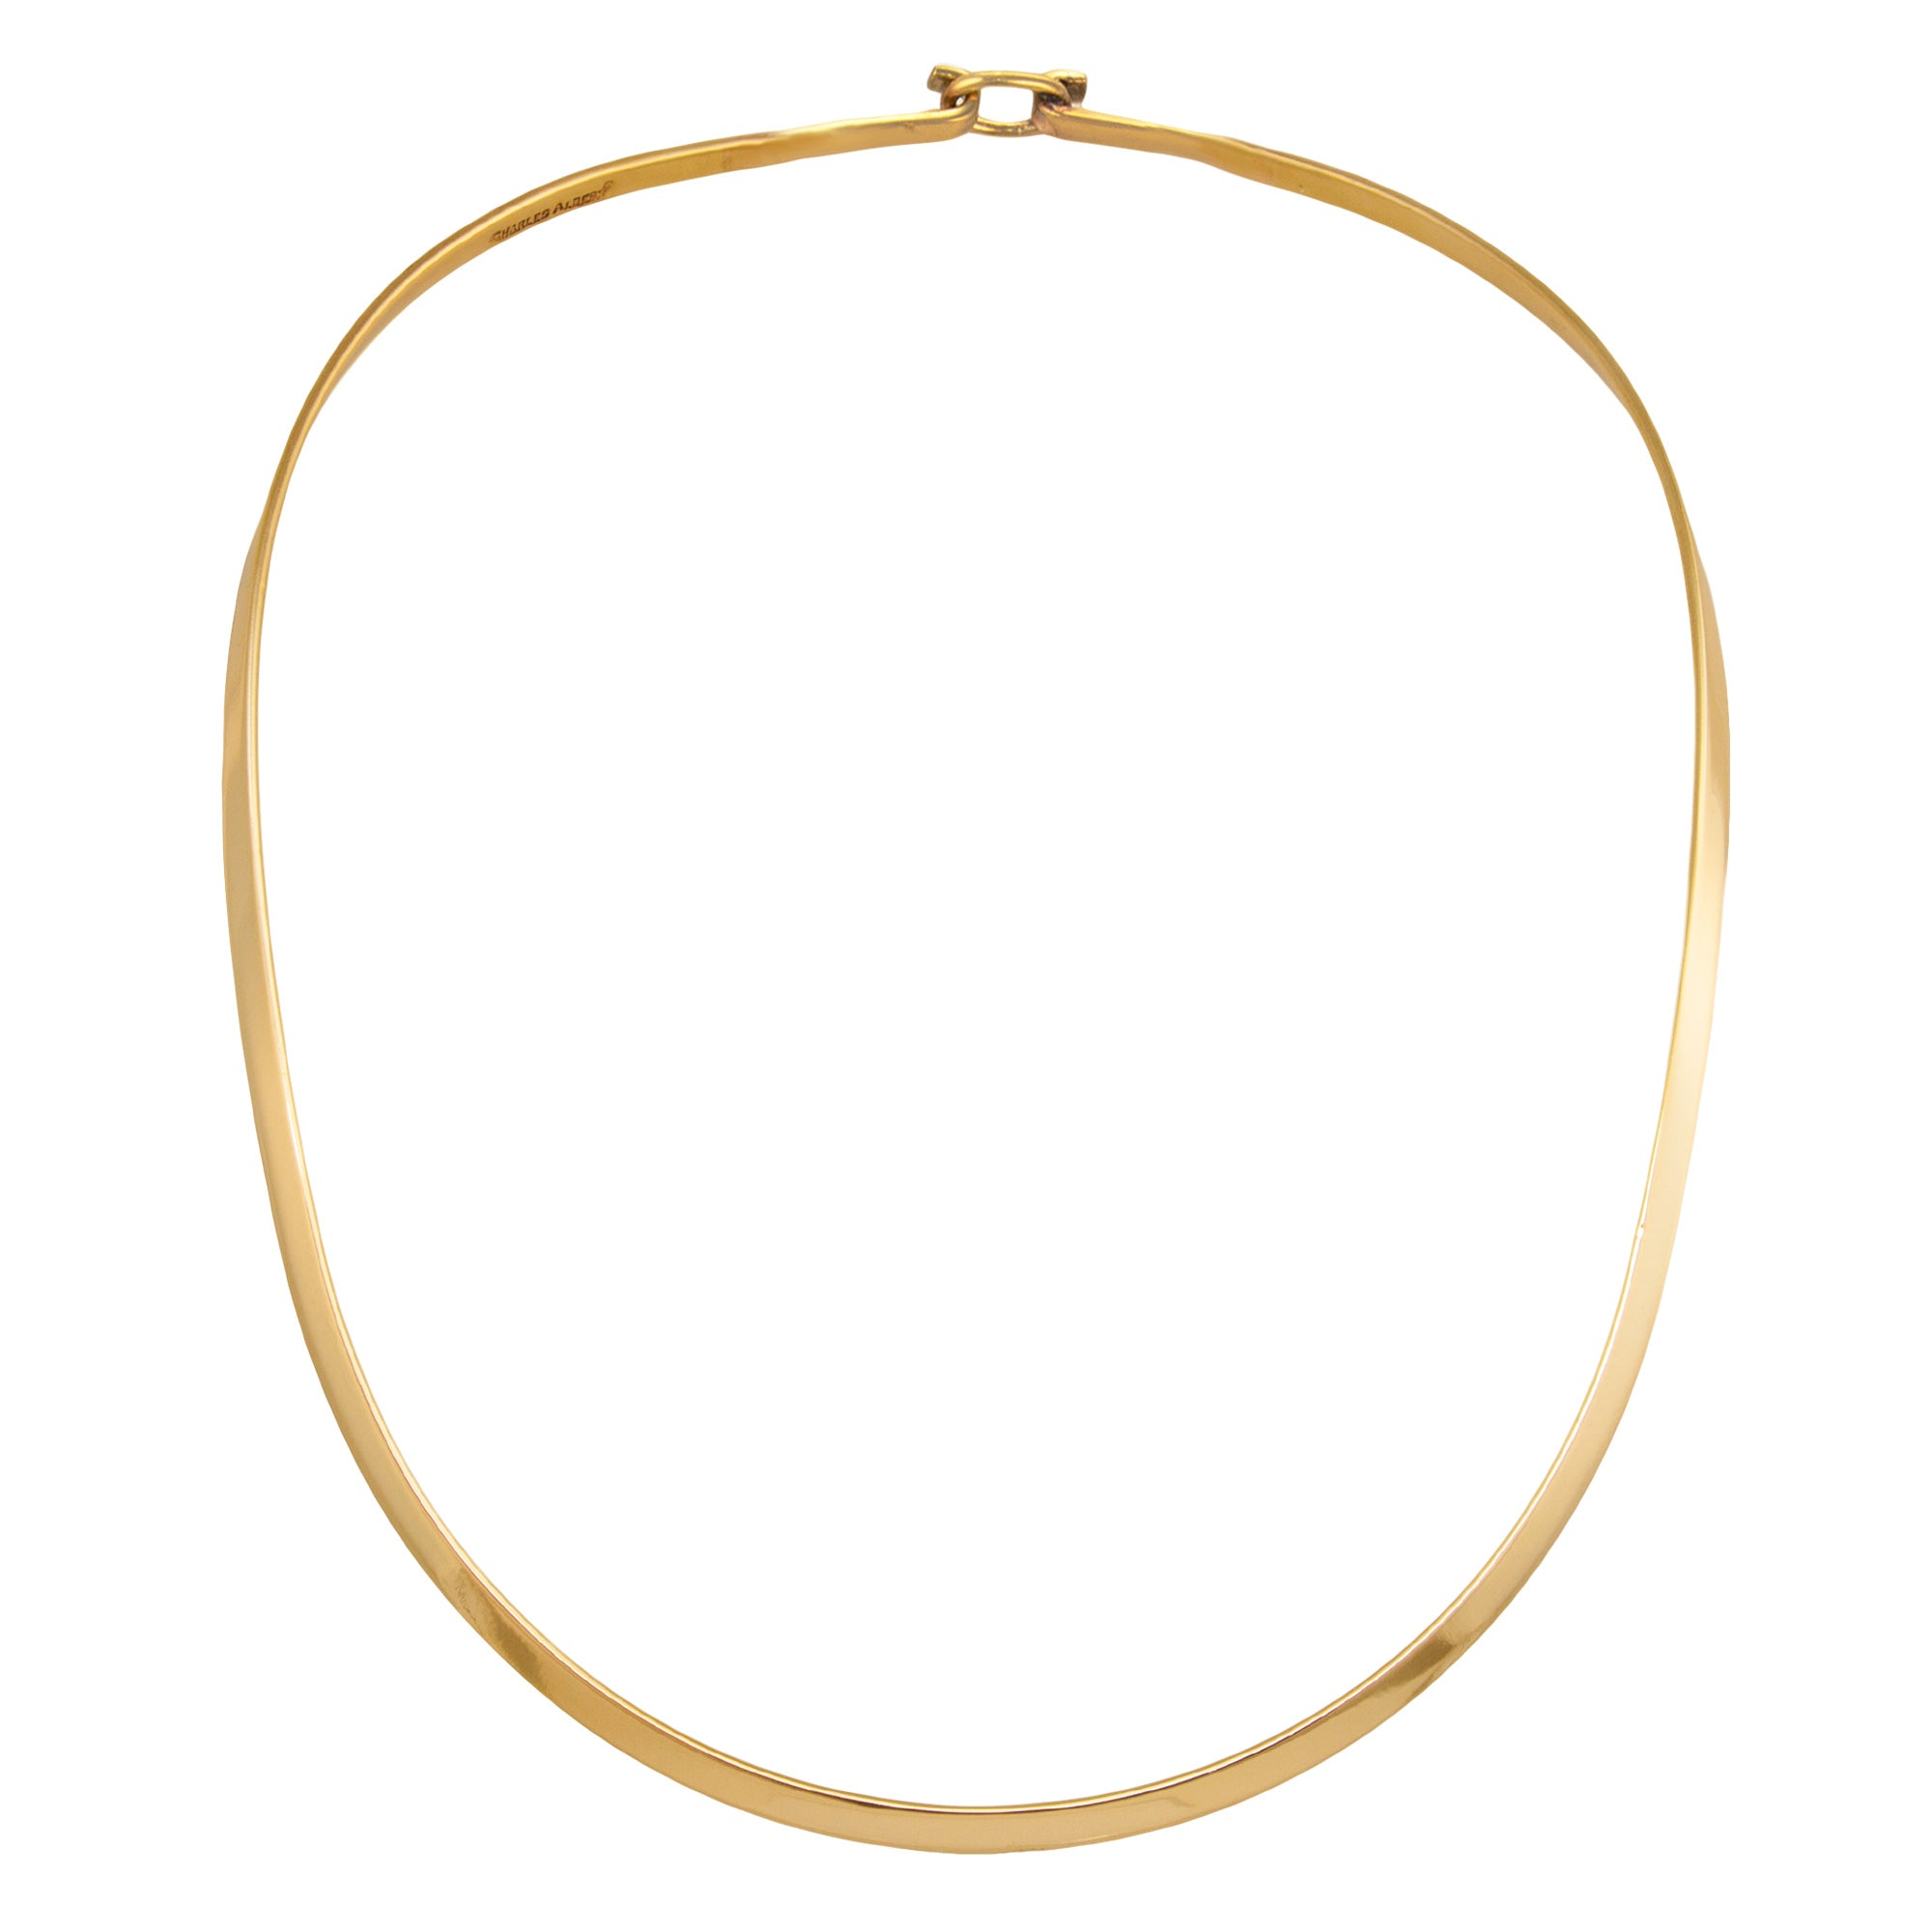 Alchemia Oval Neckwire with Clasp | Charles Albert Jewelry